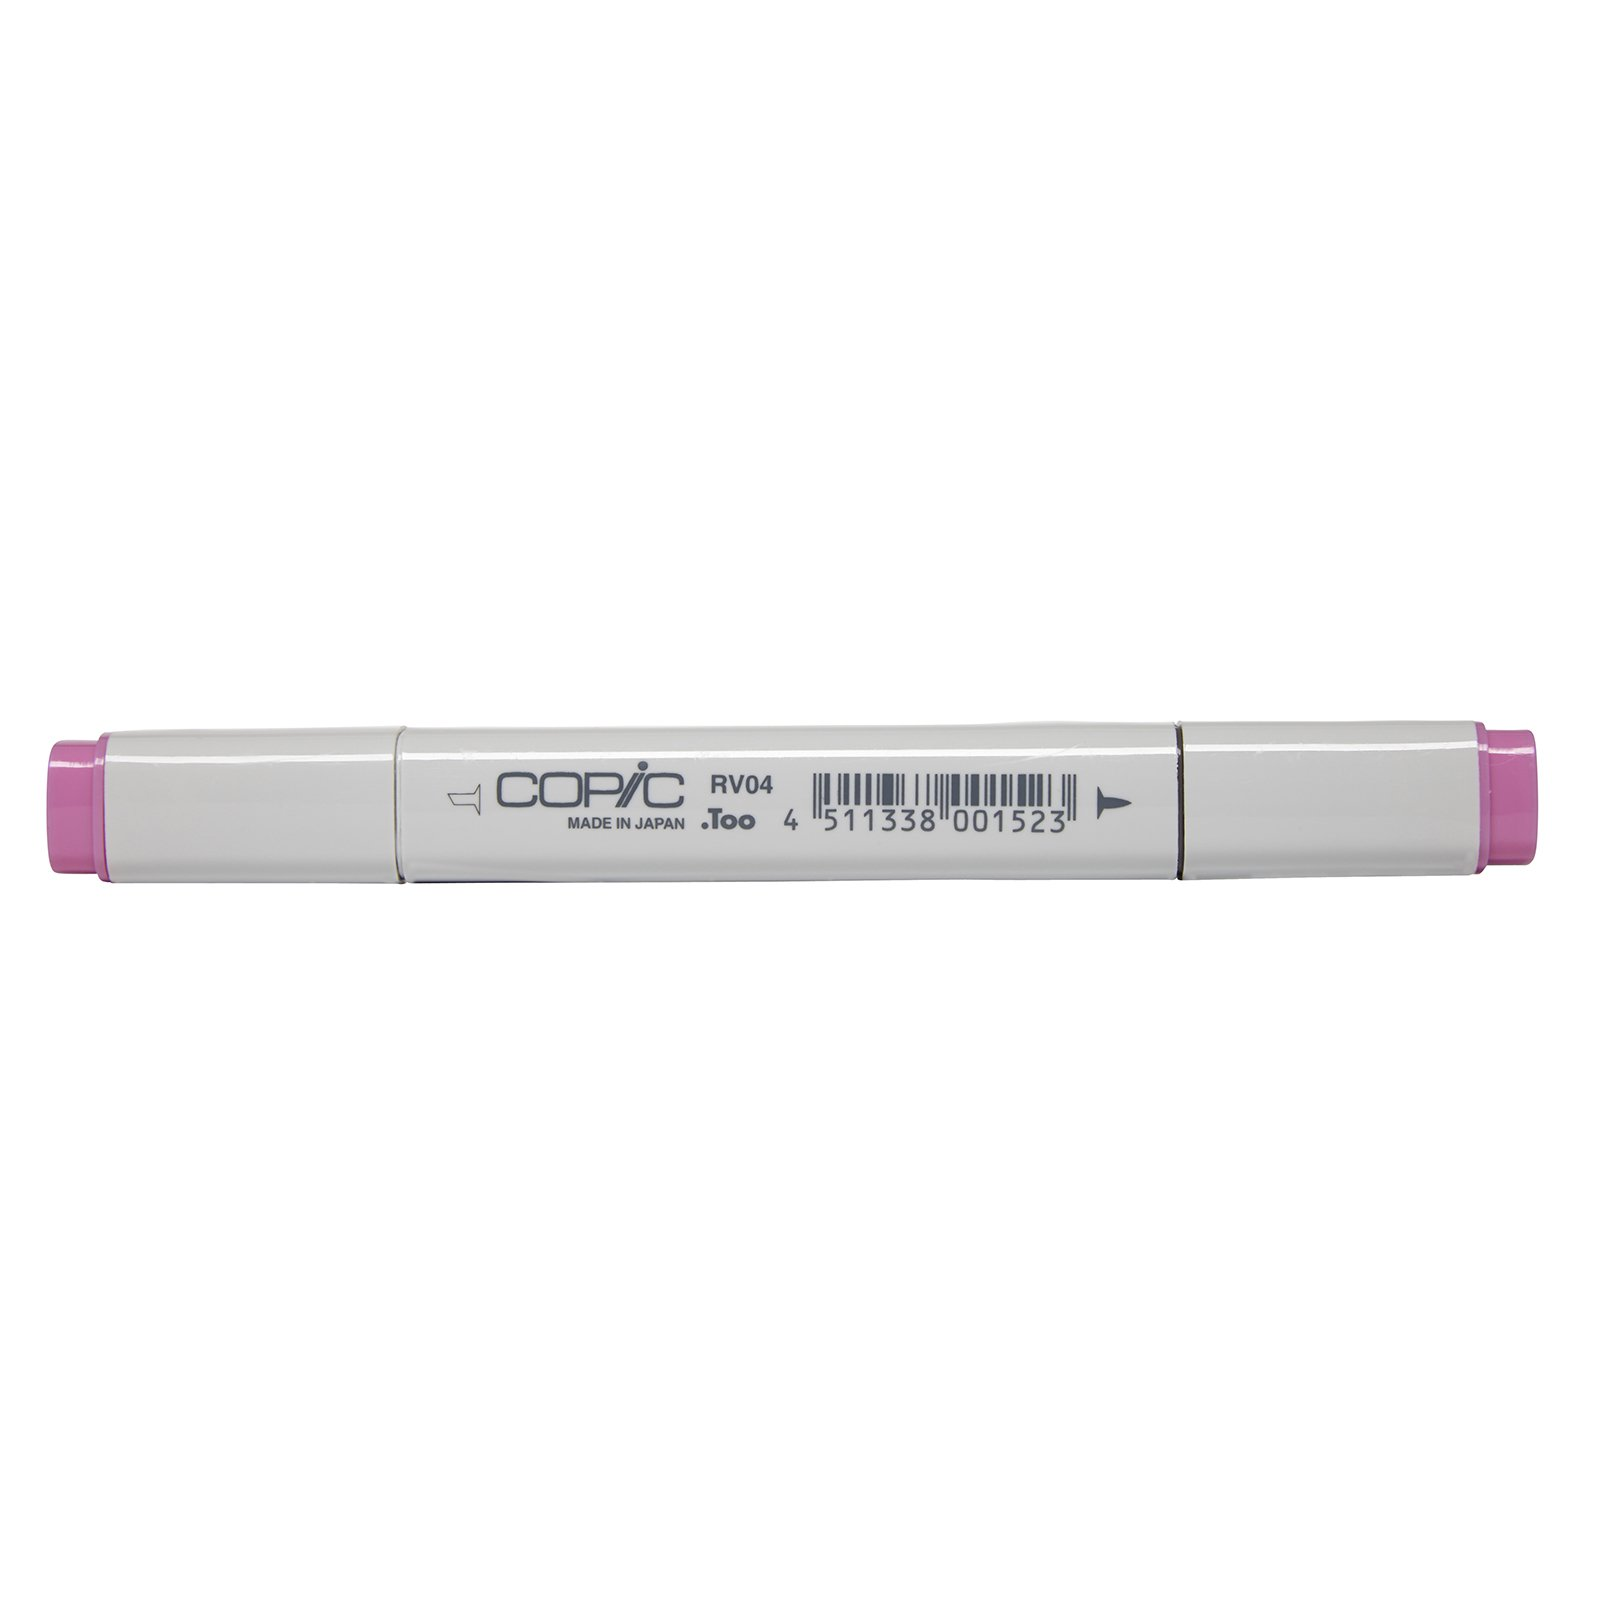 Copic Marker with Replaceable Nib, RV04-Copic, Shock Pink